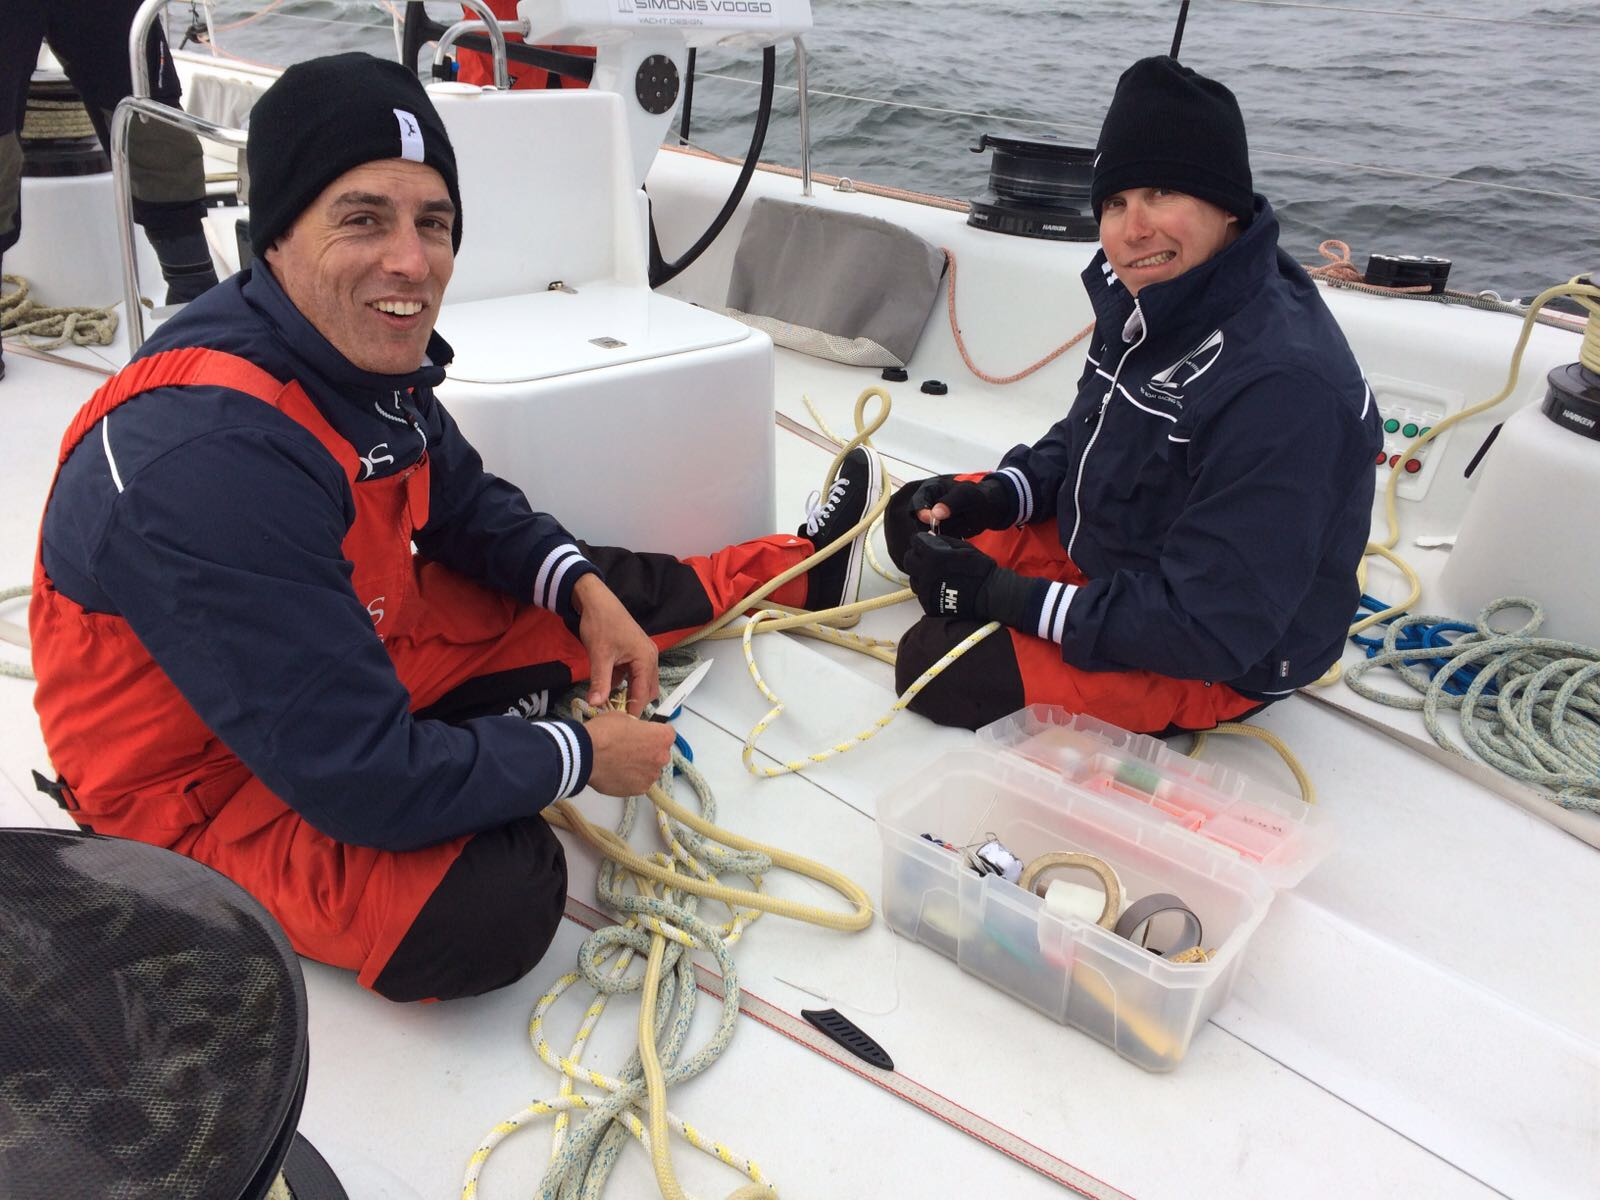 Malcolm and Jamie take advantage of the a long tack to do some whipping of the jib sheet rope covers.